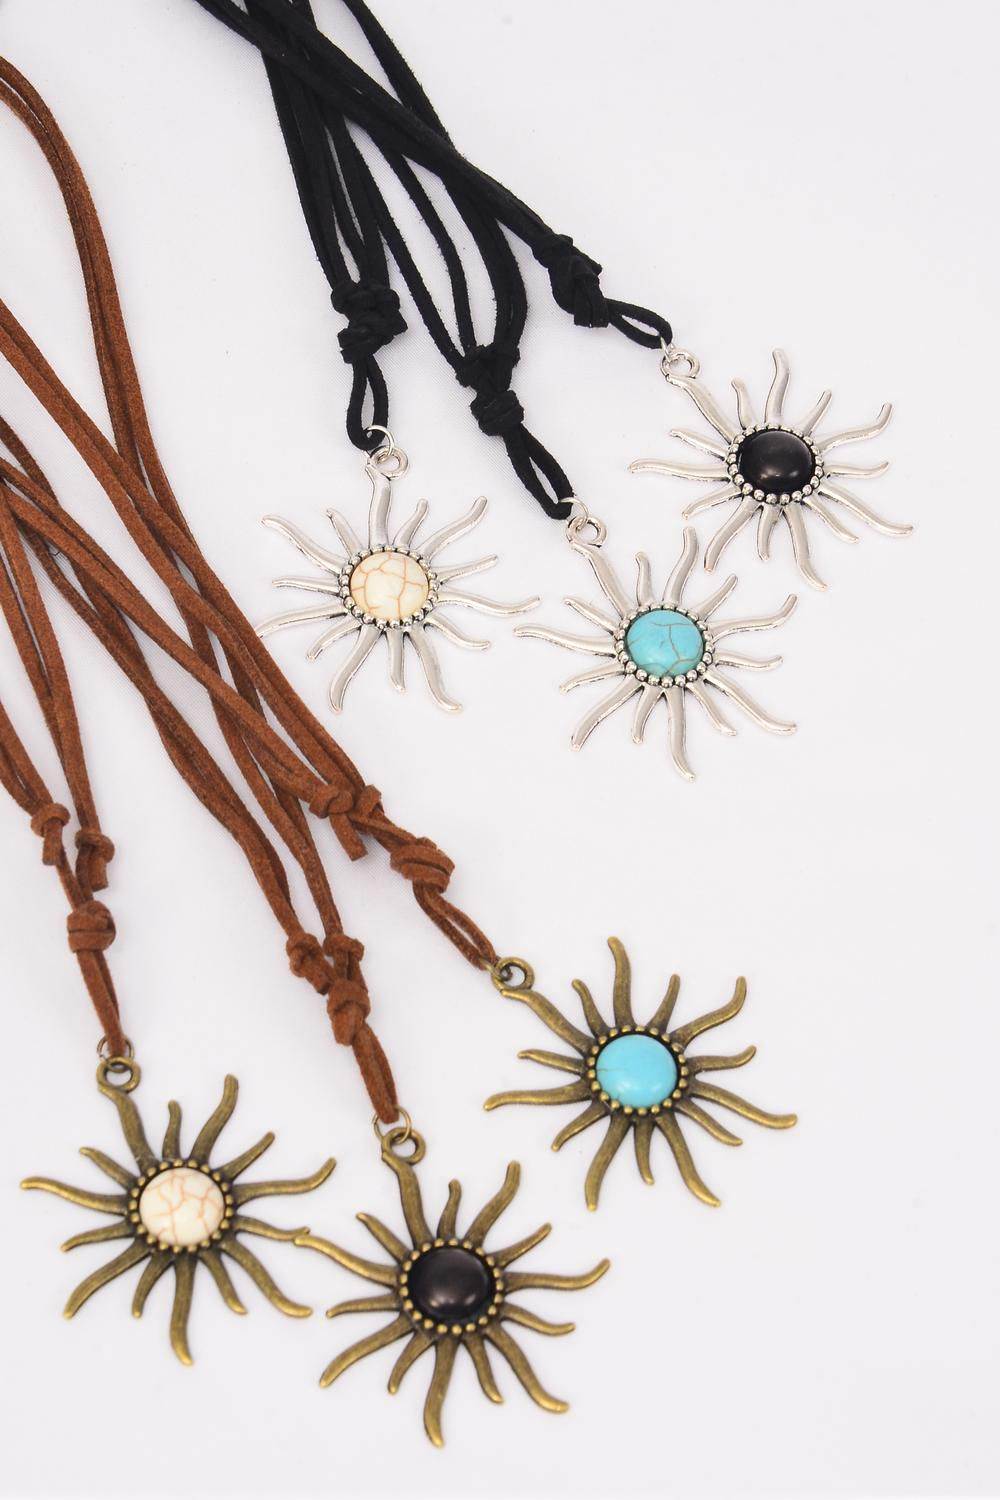 Necklace Leather Feel Sun Pendant Semiprecious Pendant Semiprecious Stone/DZ Necklace **Adjustable** 4 Ivory,4 Black,4 Turquoise Asst,Hang Tag & OPP Bag & UPC Code